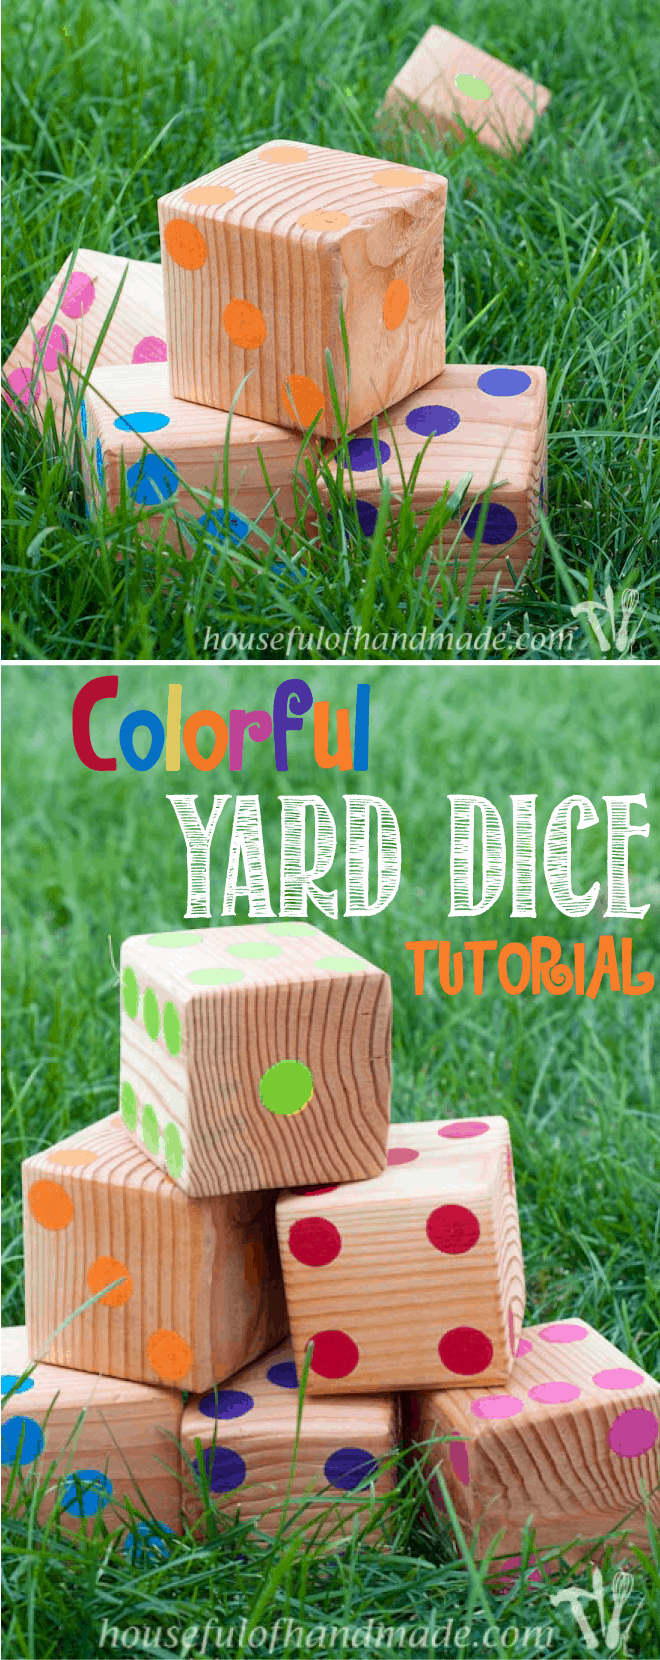 colorful yard dice tutorial a houseful of handmade